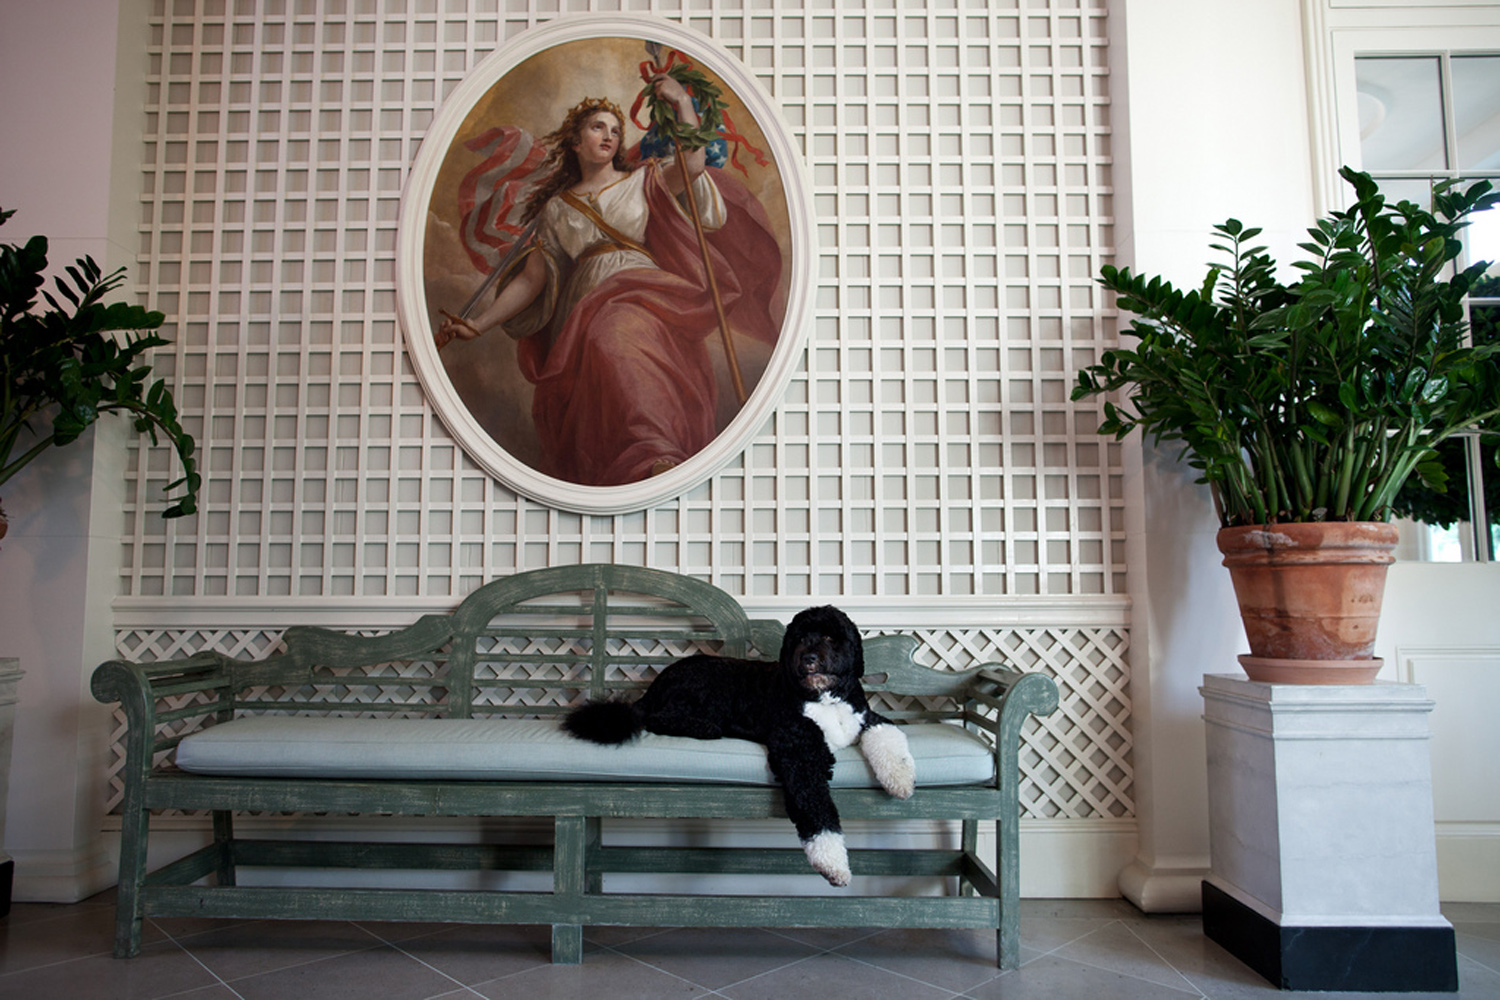 September 15, 2011. Bo, the Obama family dog, lounges in the West Garden Room of the White House.